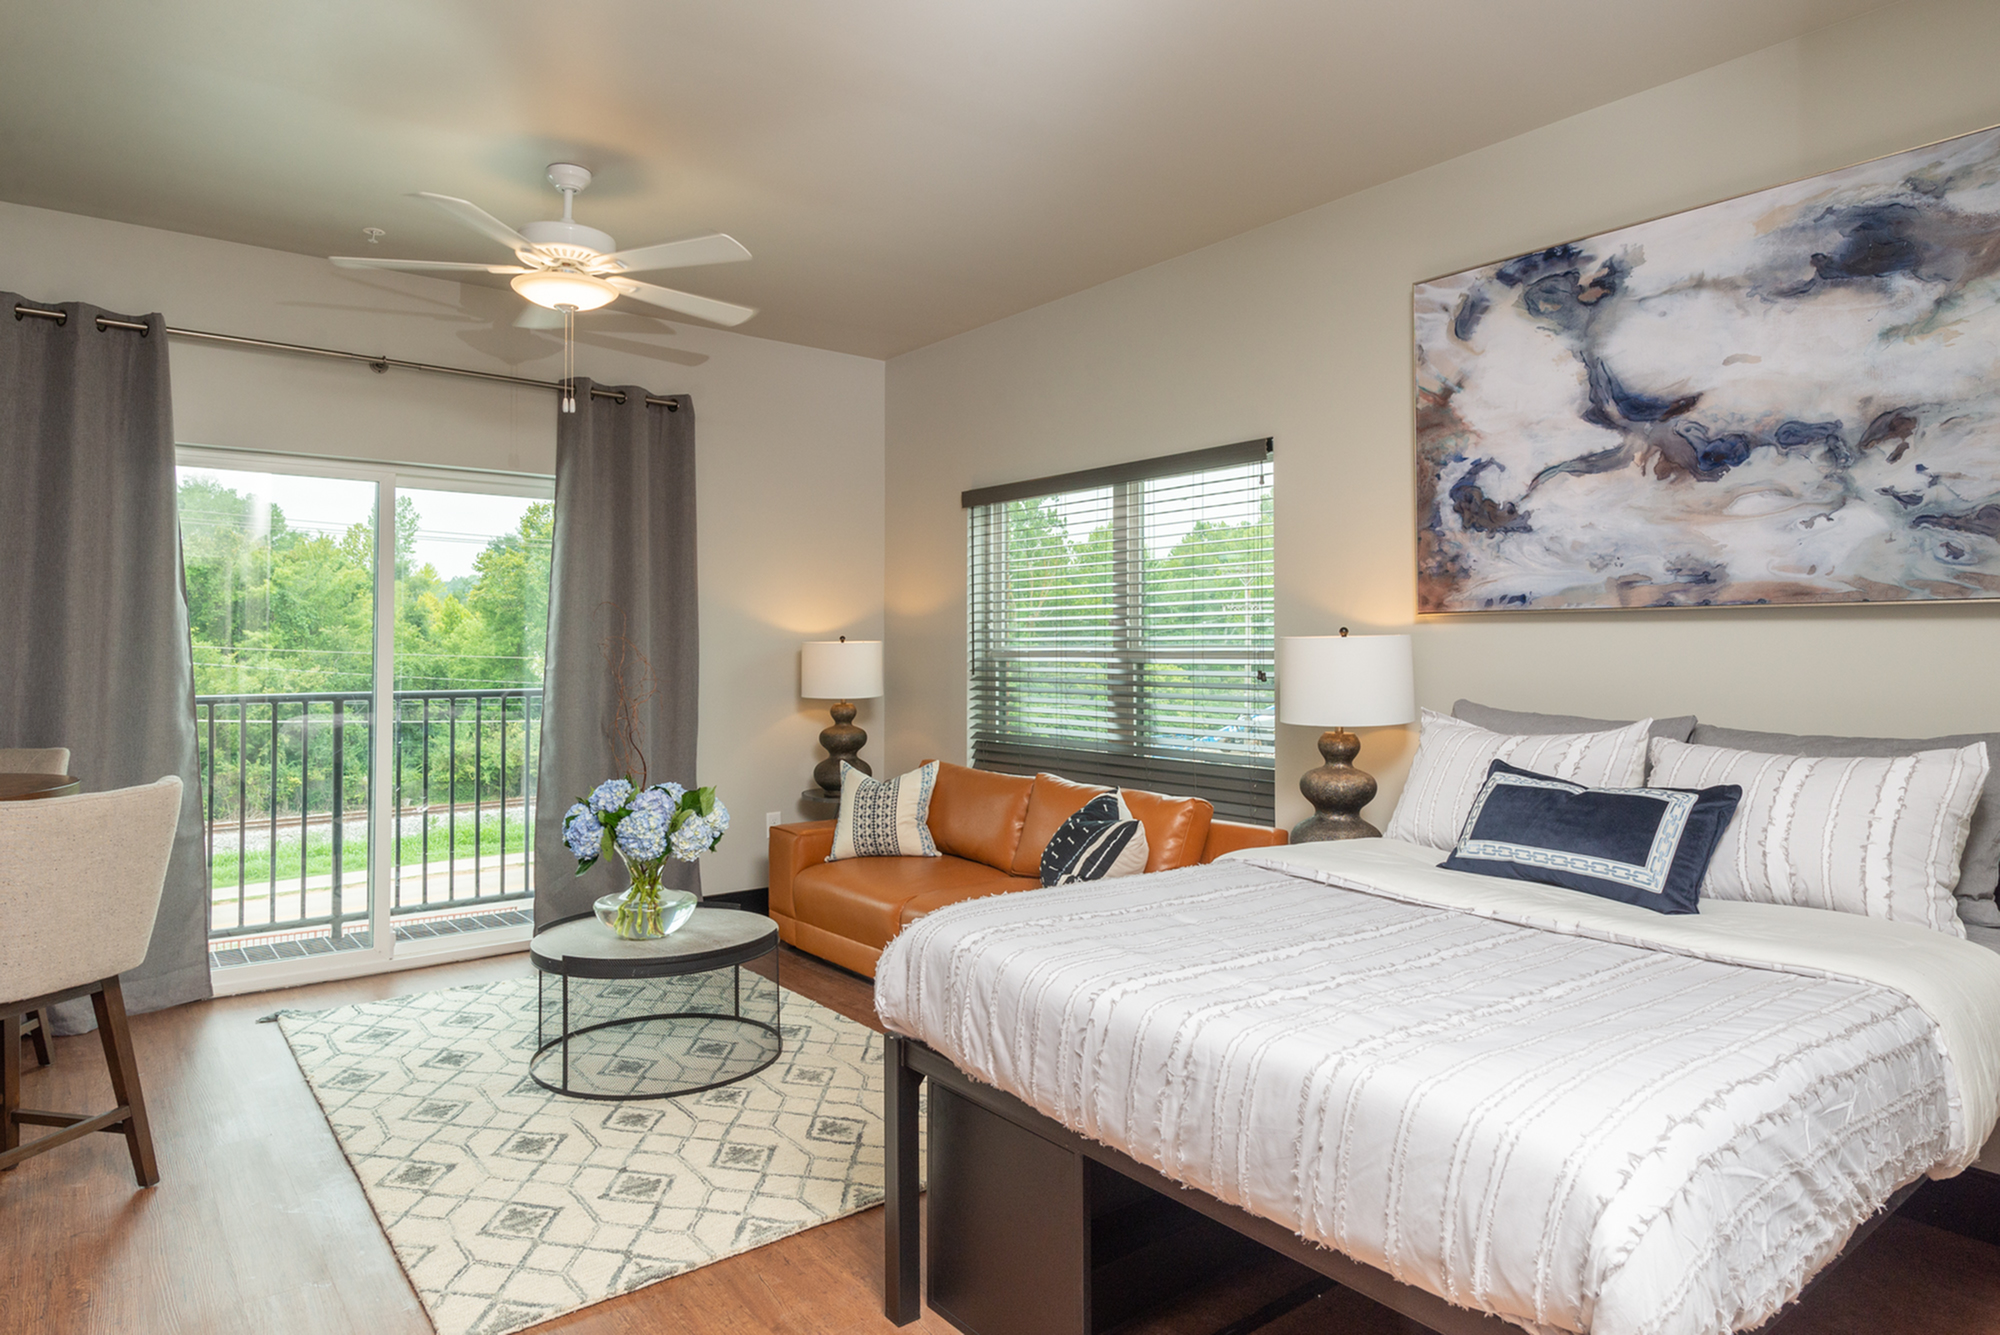 studio apartment with tan couch and a bed with white comforter